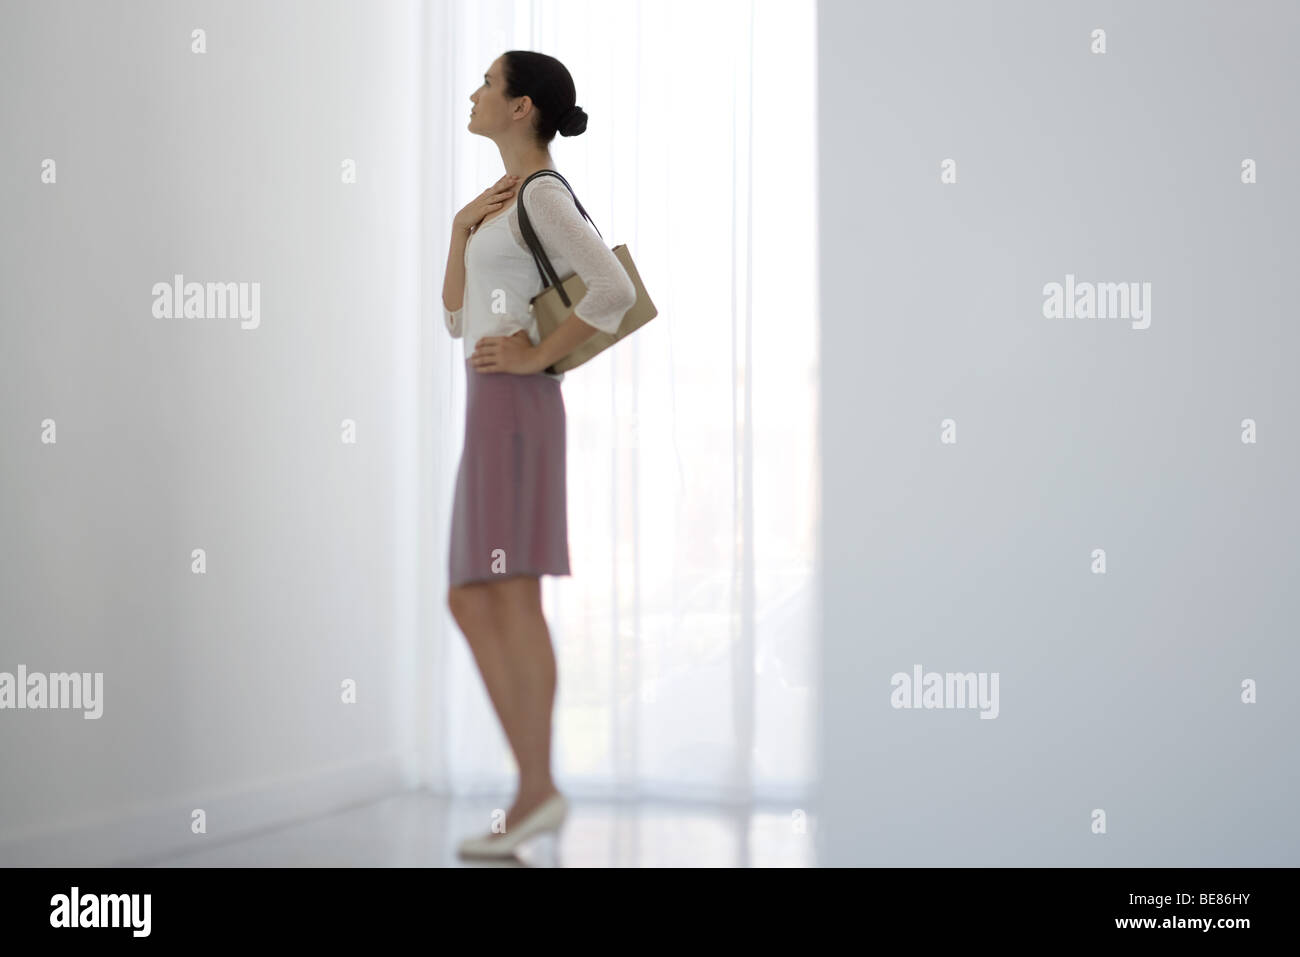 Woman standing beside window, looking up, side view - Stock Image